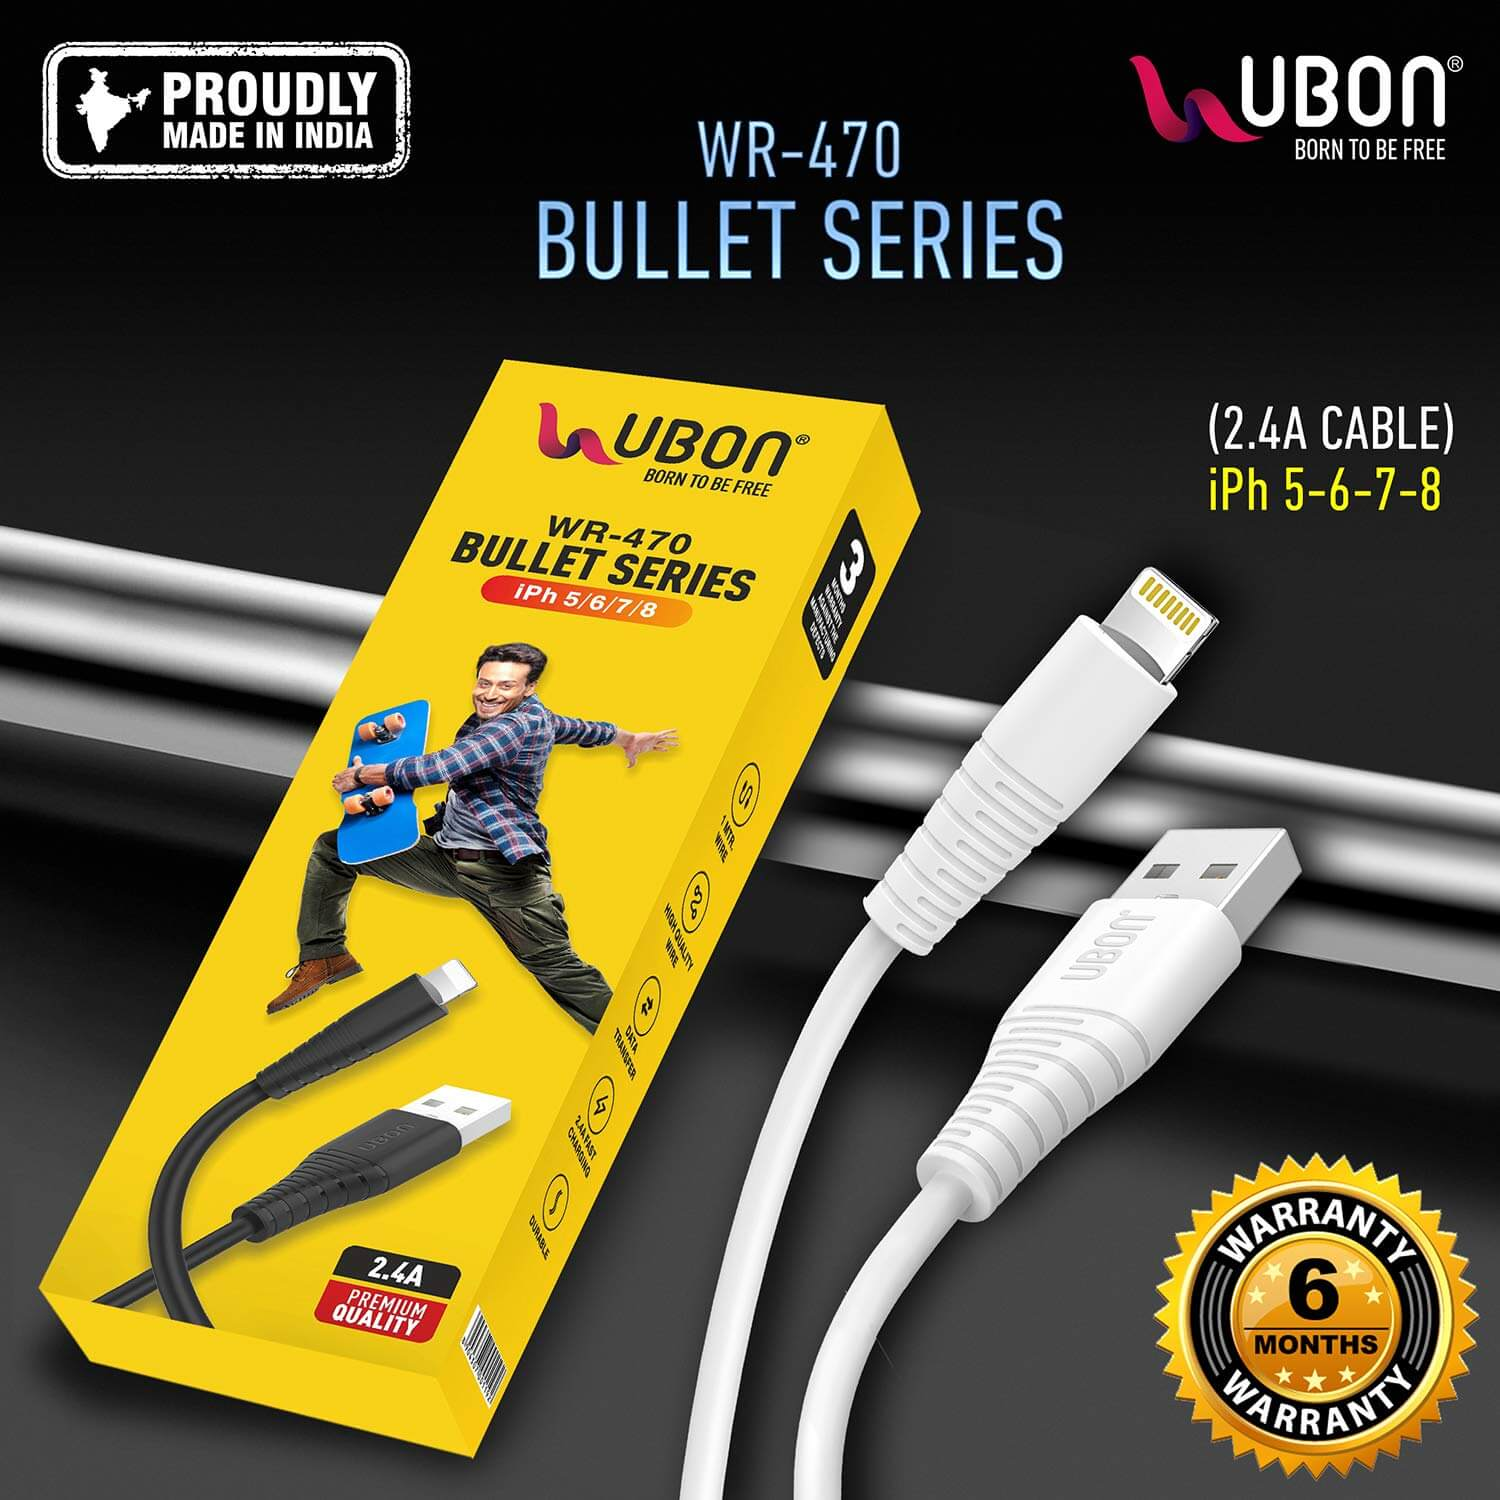 UBON WR-470 2.4A Cable for Fast Charging